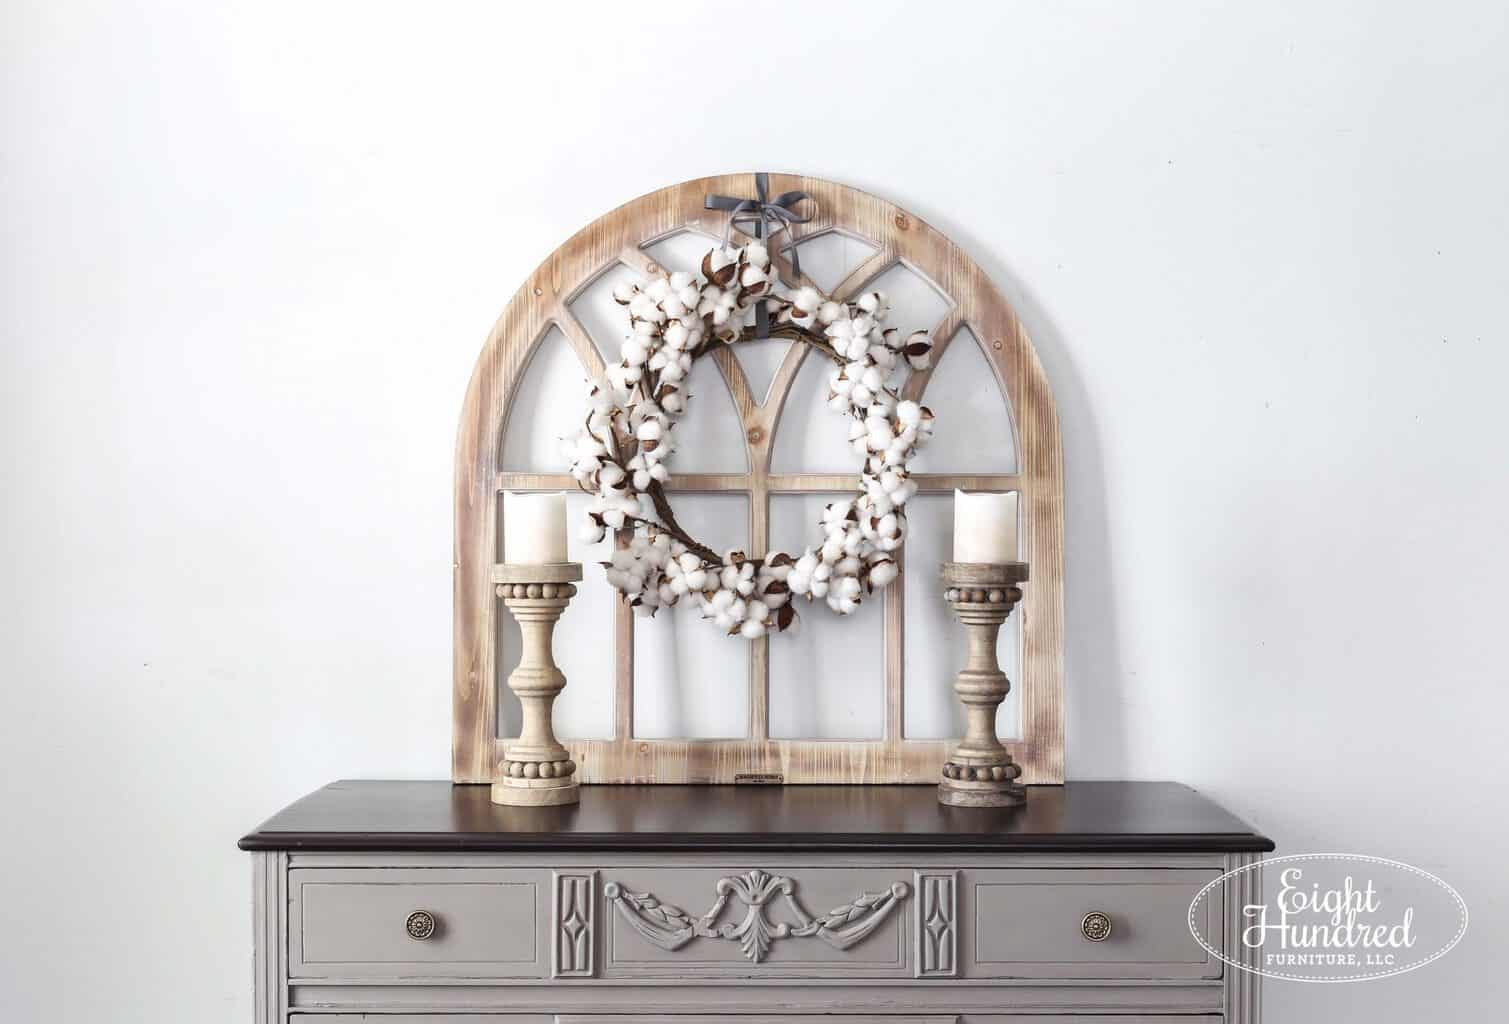 Wooden arch with cotton wreath and wooden candlesticks on French Linen dresser